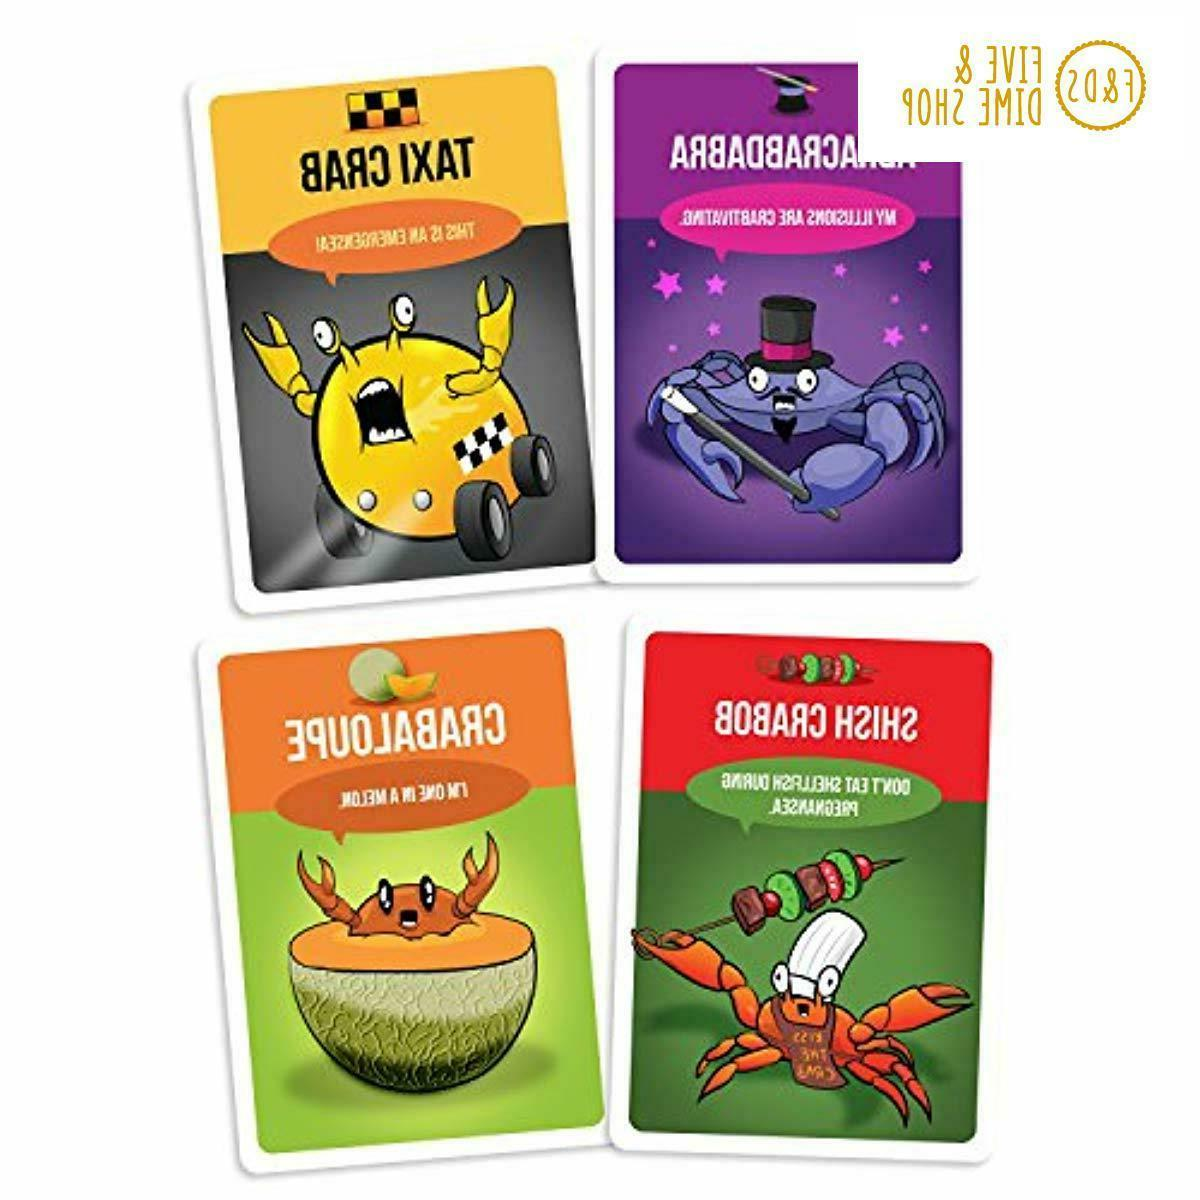 You've Got Card Game the Creators Exploding -